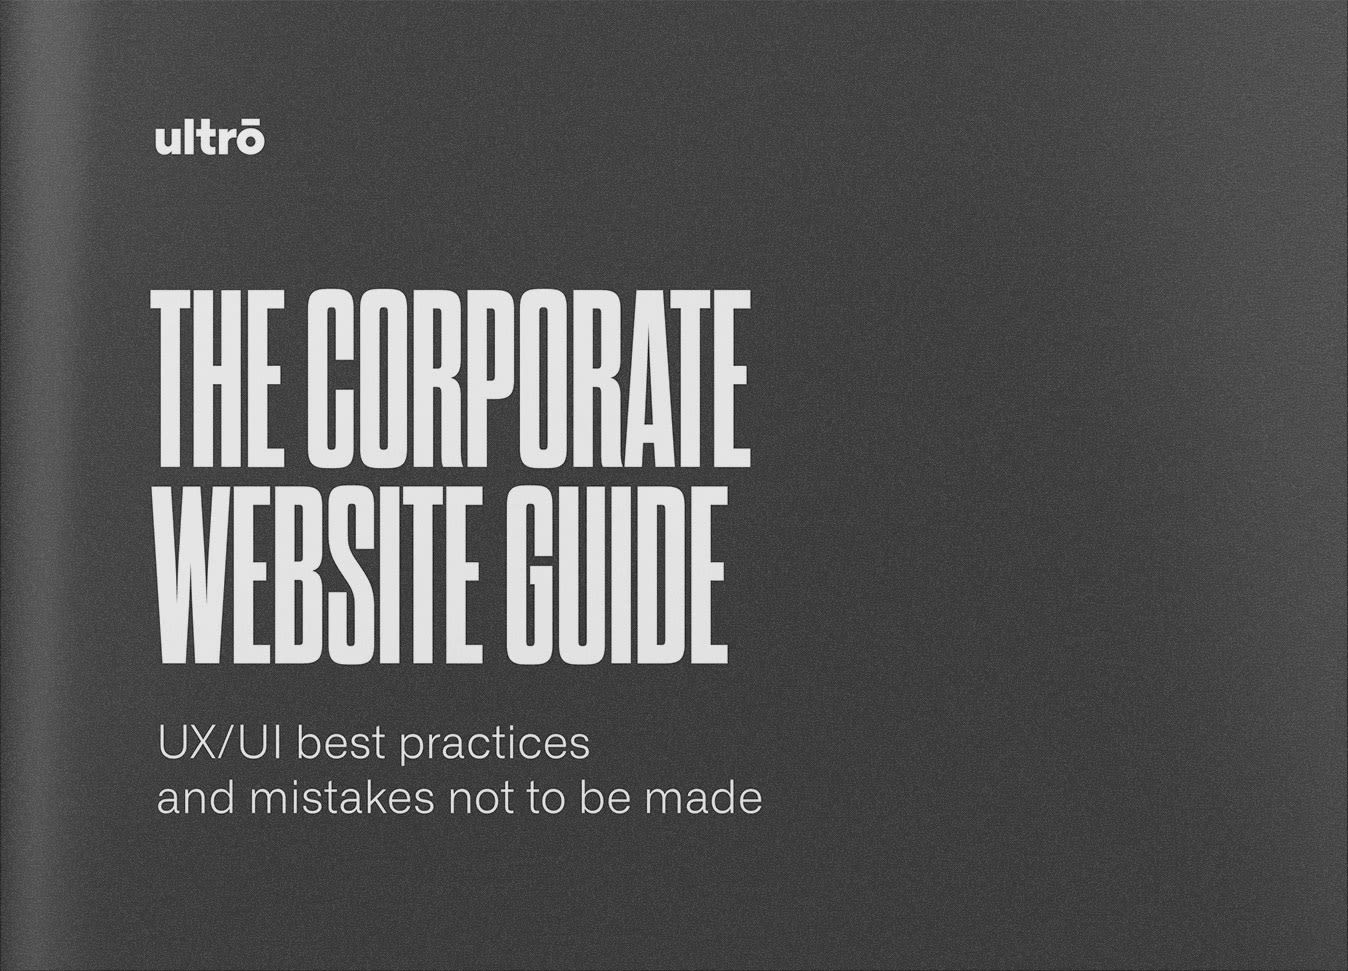 The corporate website guide: UX/UI best practices and mistakes not to be made